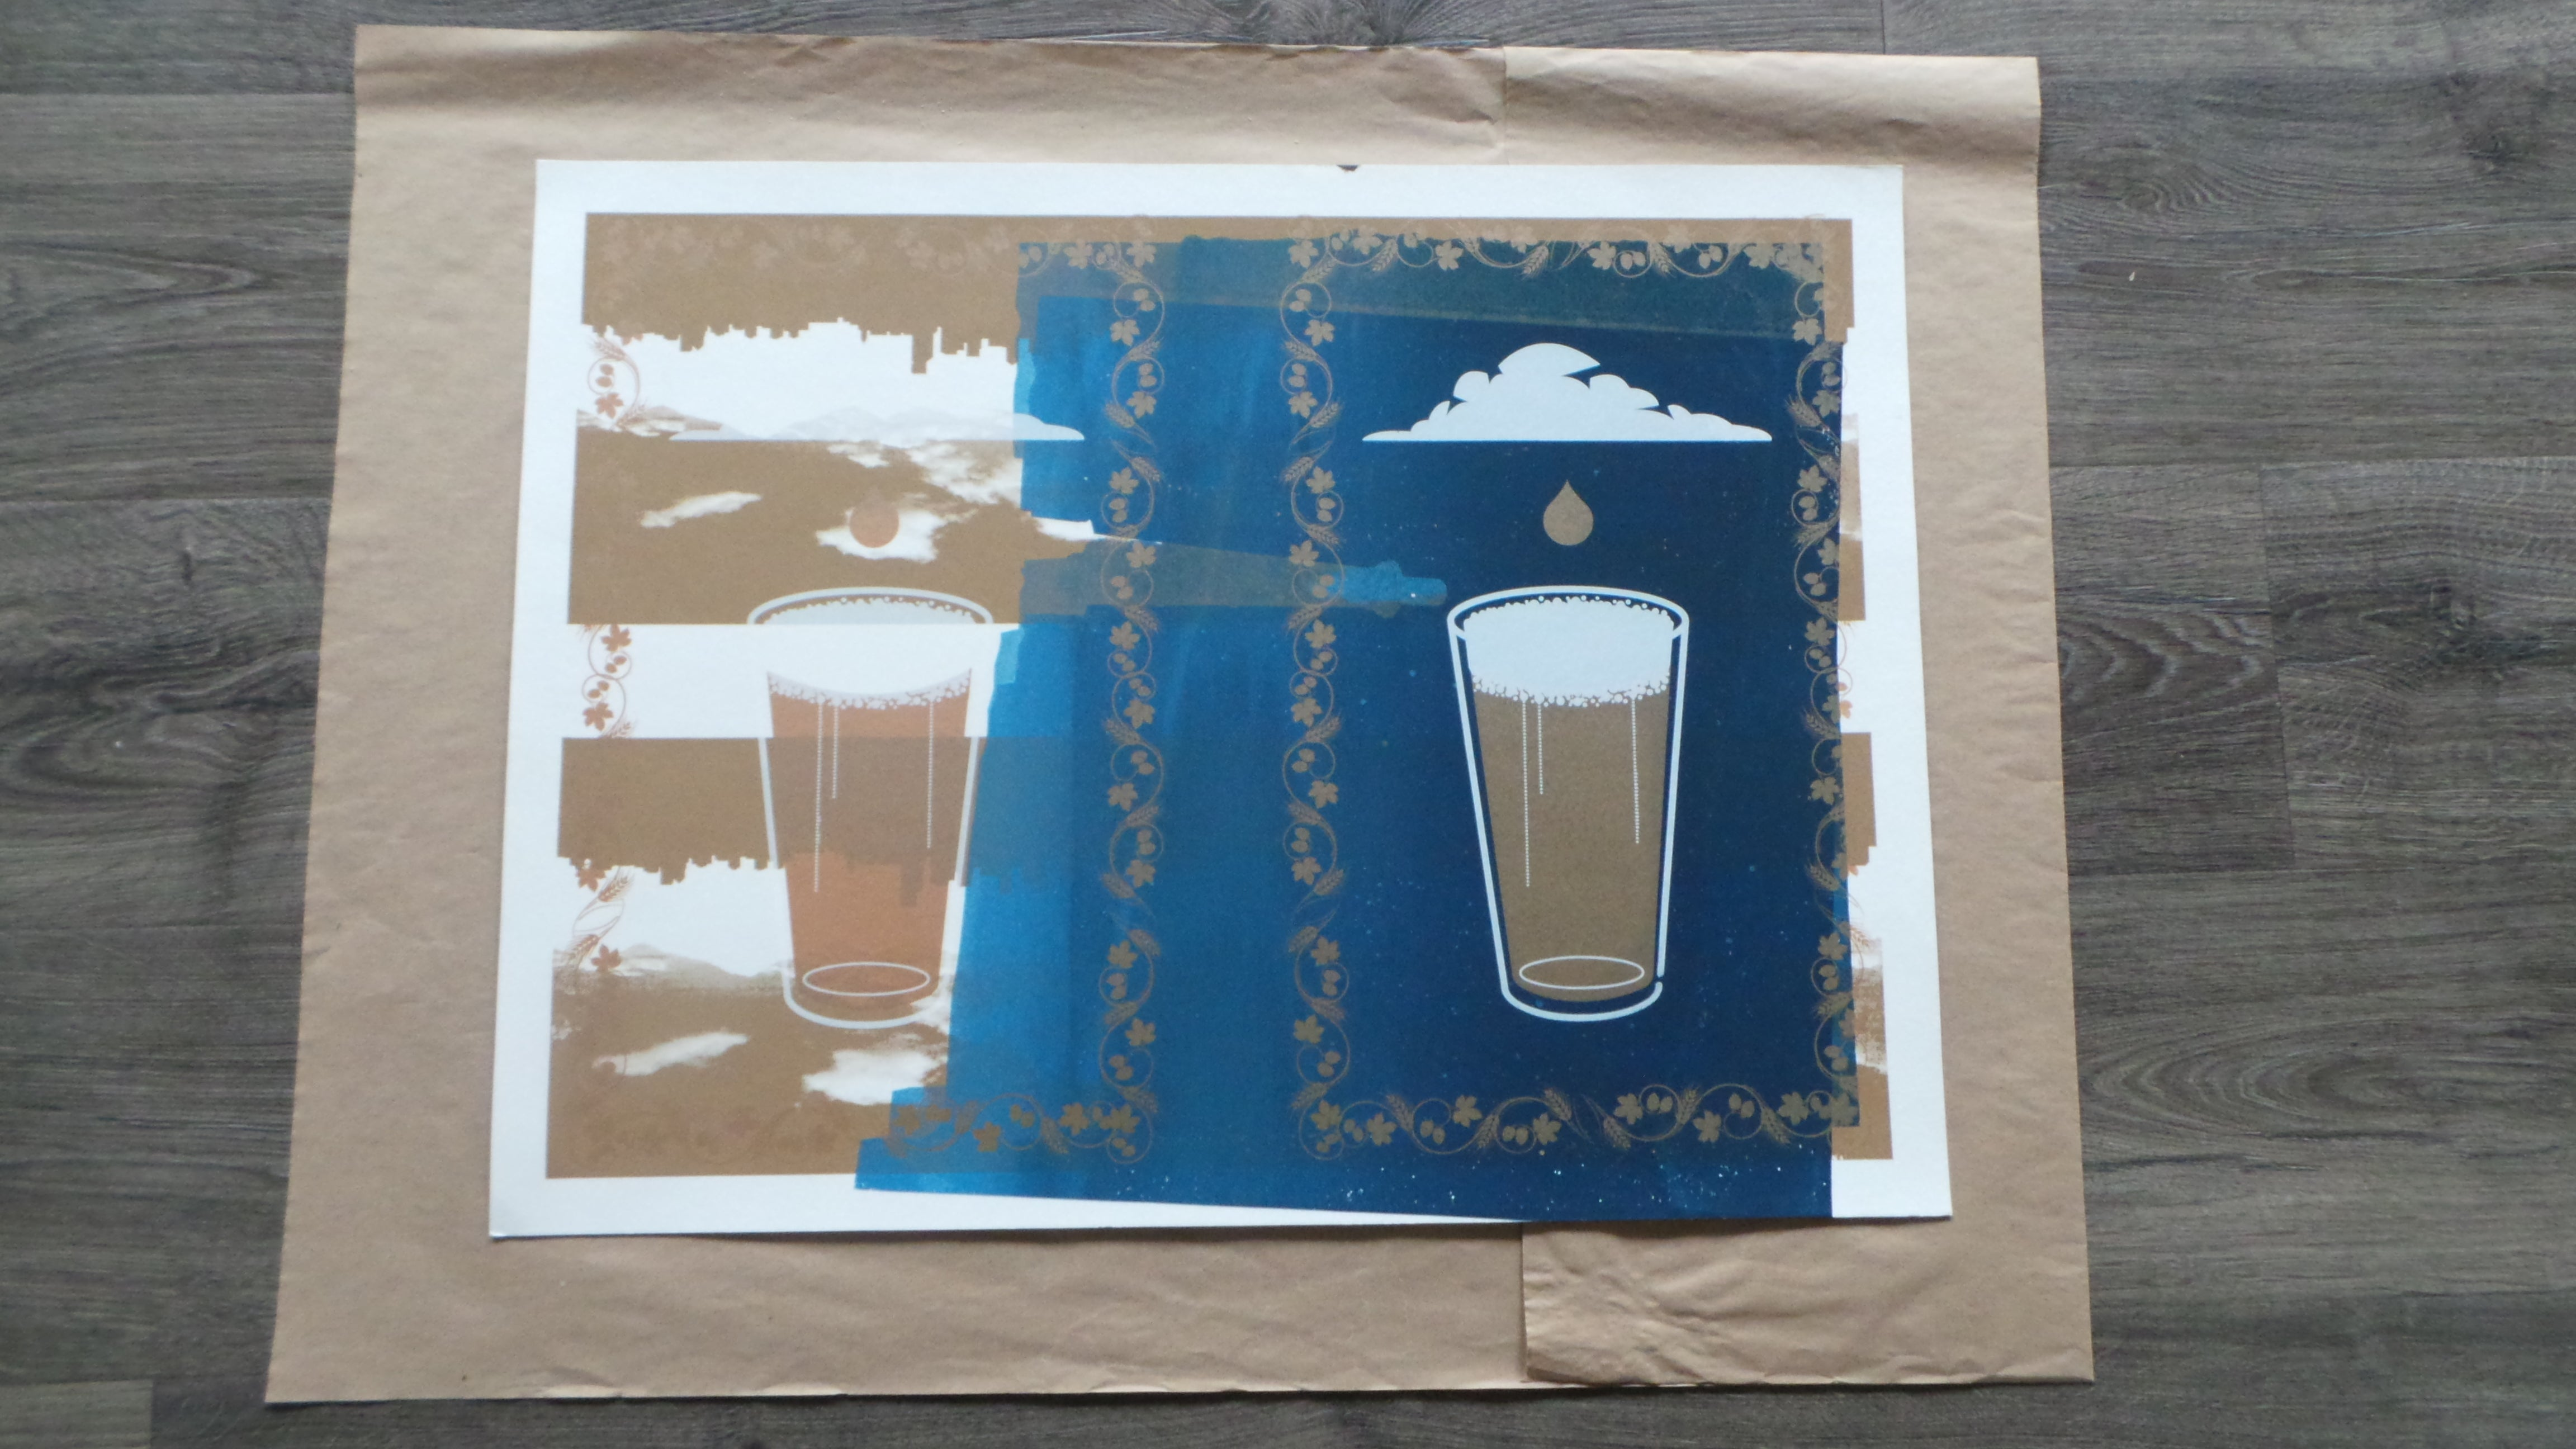 Raining in the cups Poster, unsigned, not numbered